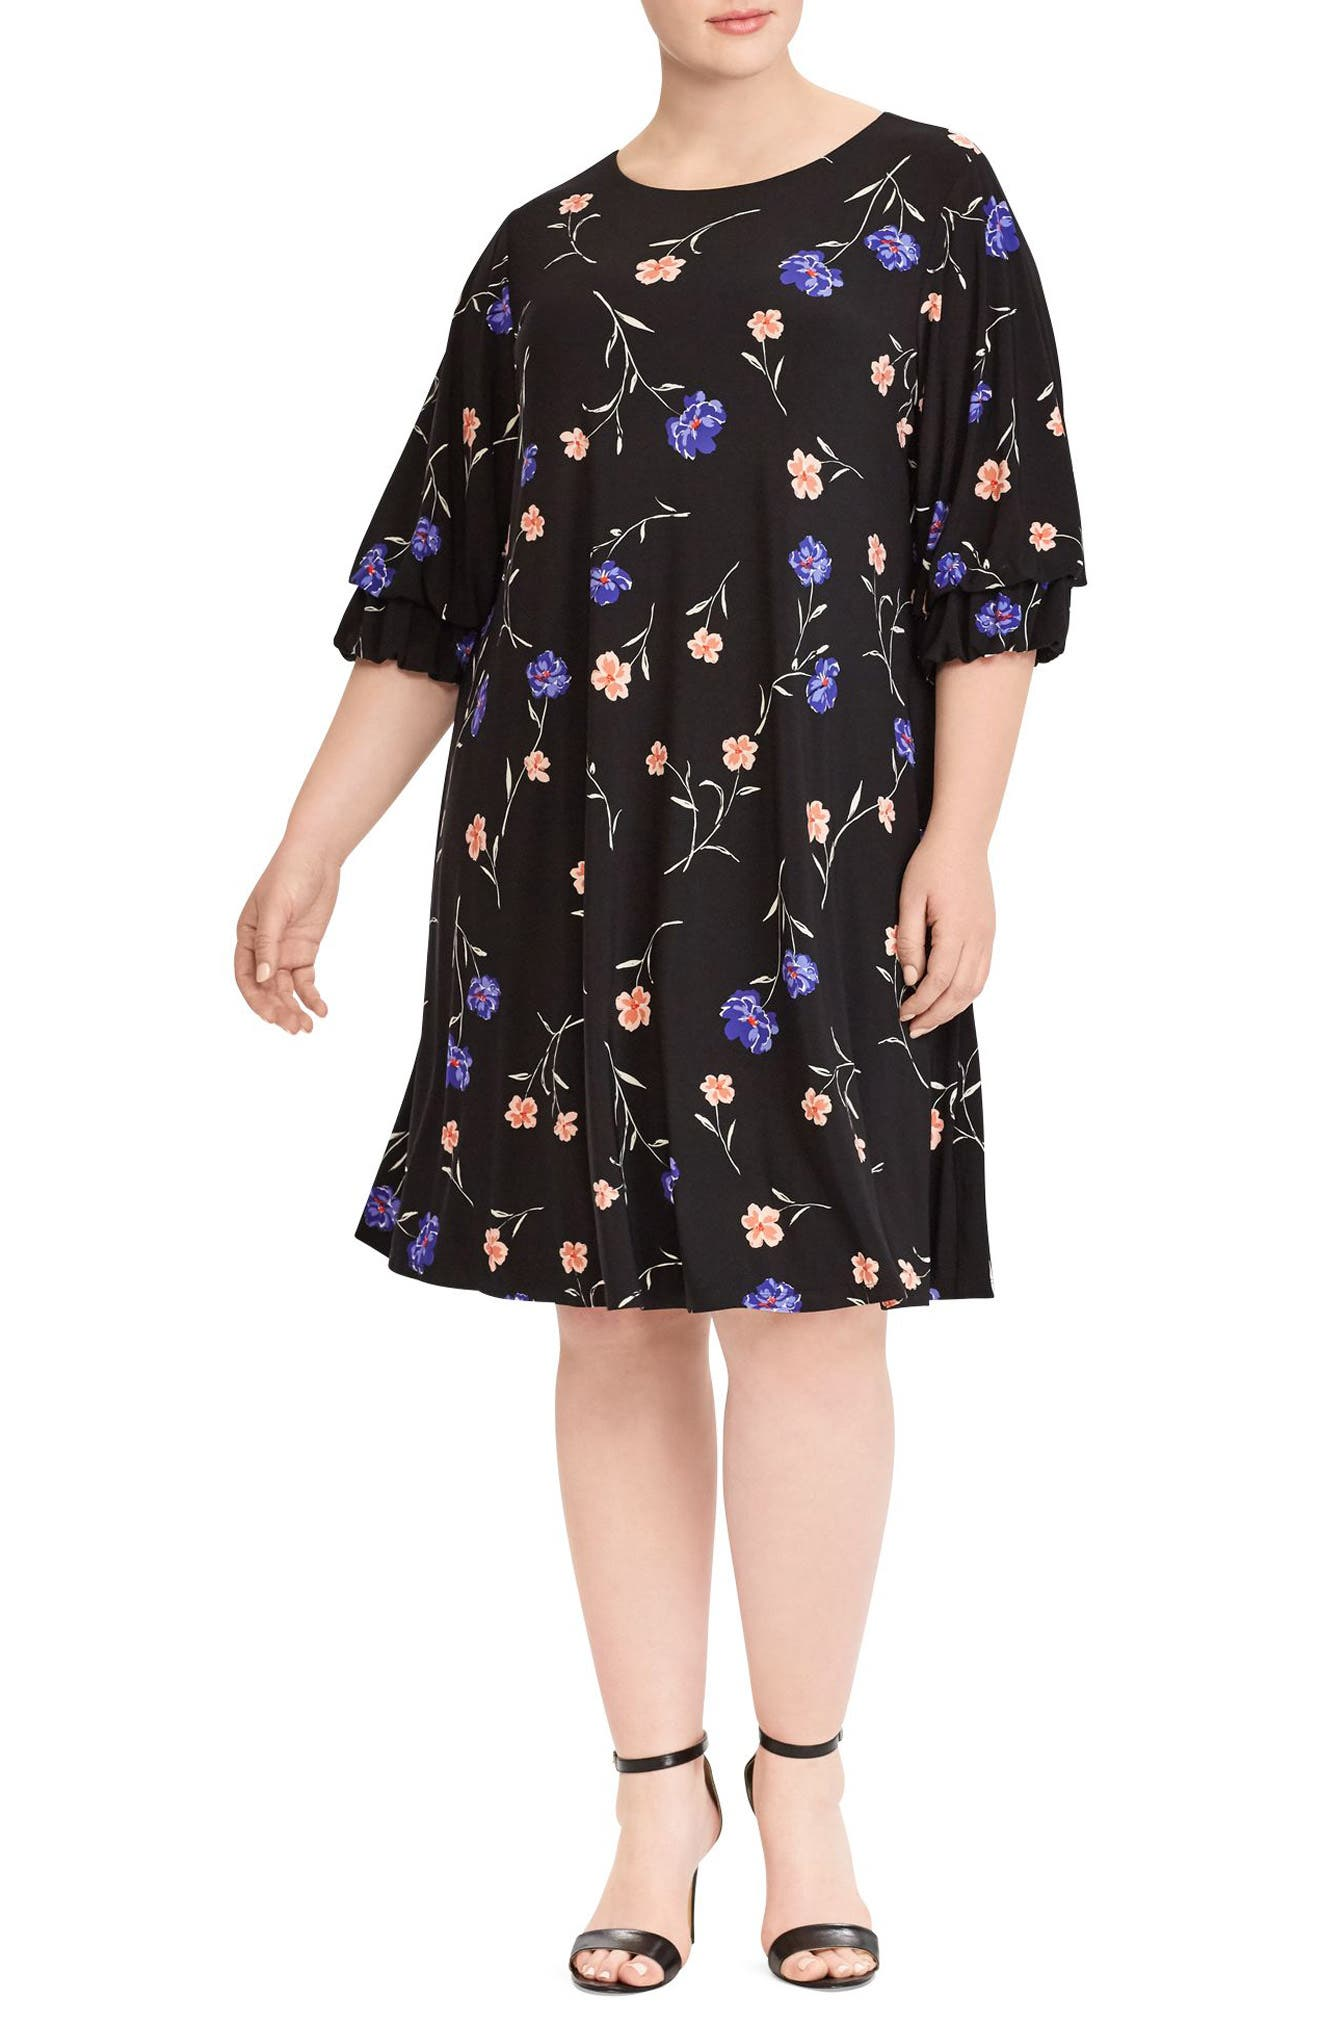 Ruffle Sleeve Floral Print Dress,                             Main thumbnail 1, color,                             Black-Blue-Multi